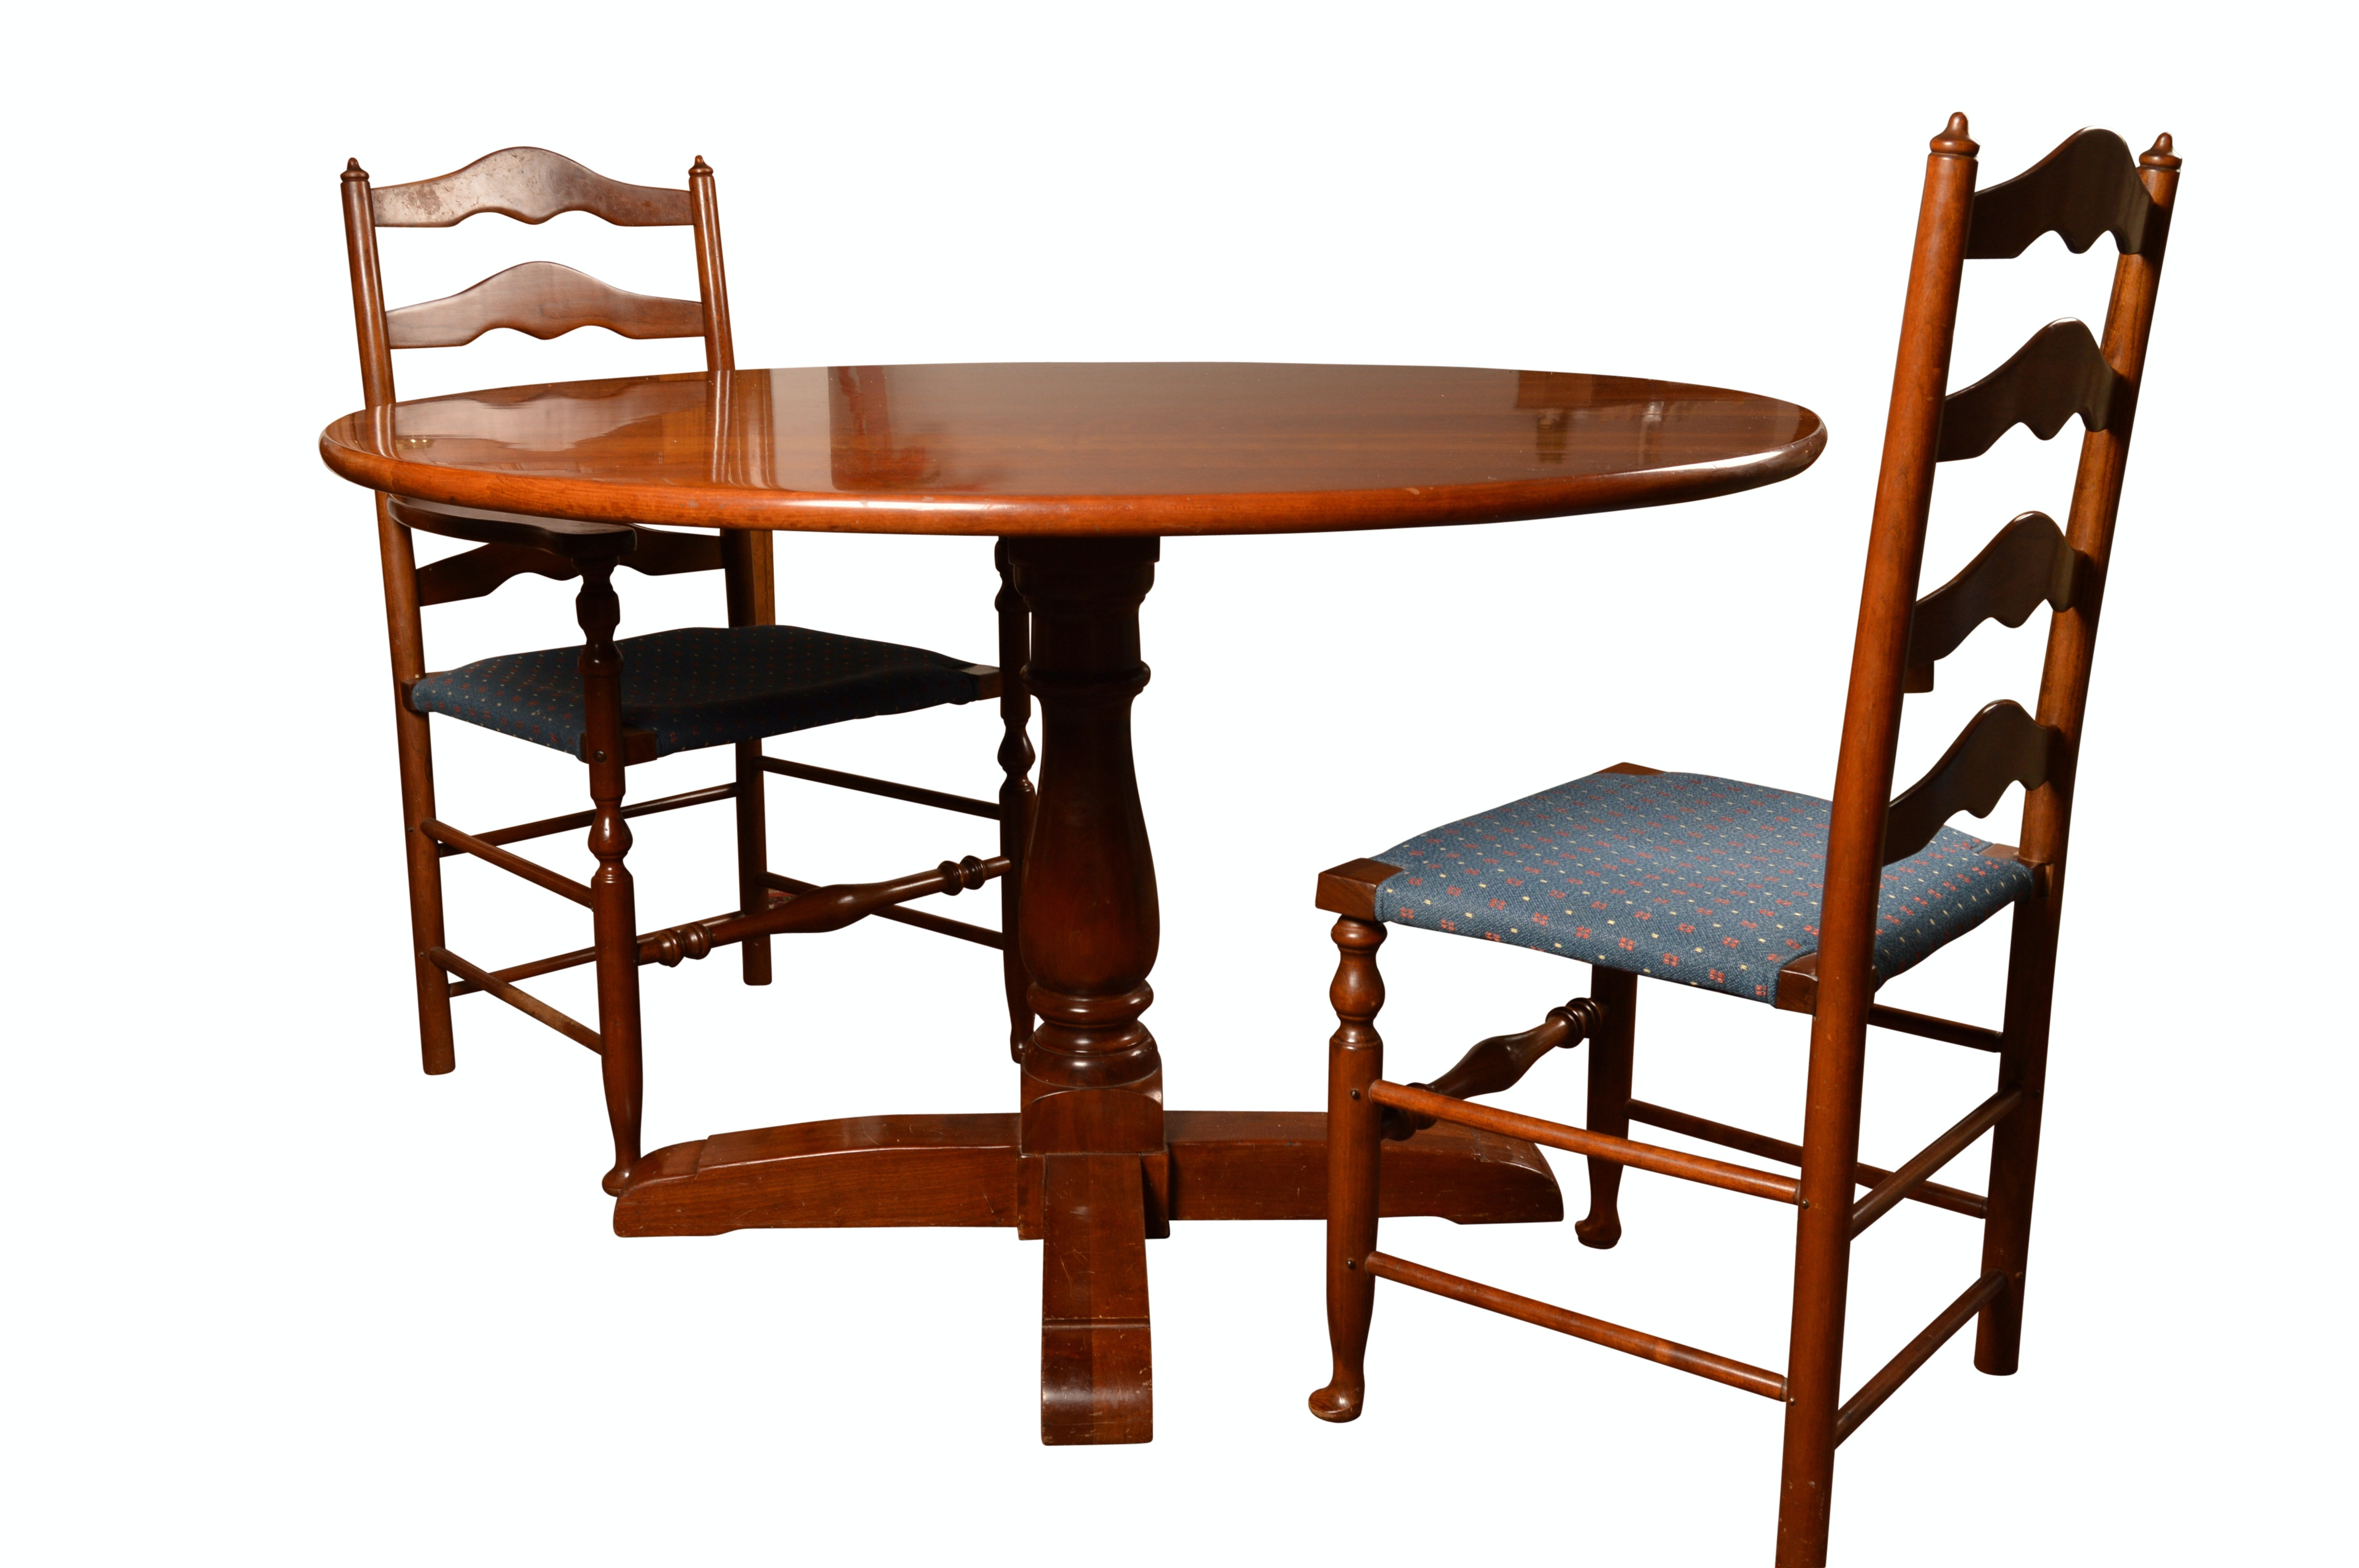 Stickley Cherry Colonial Style Table with Two Ladder-Back Chairs